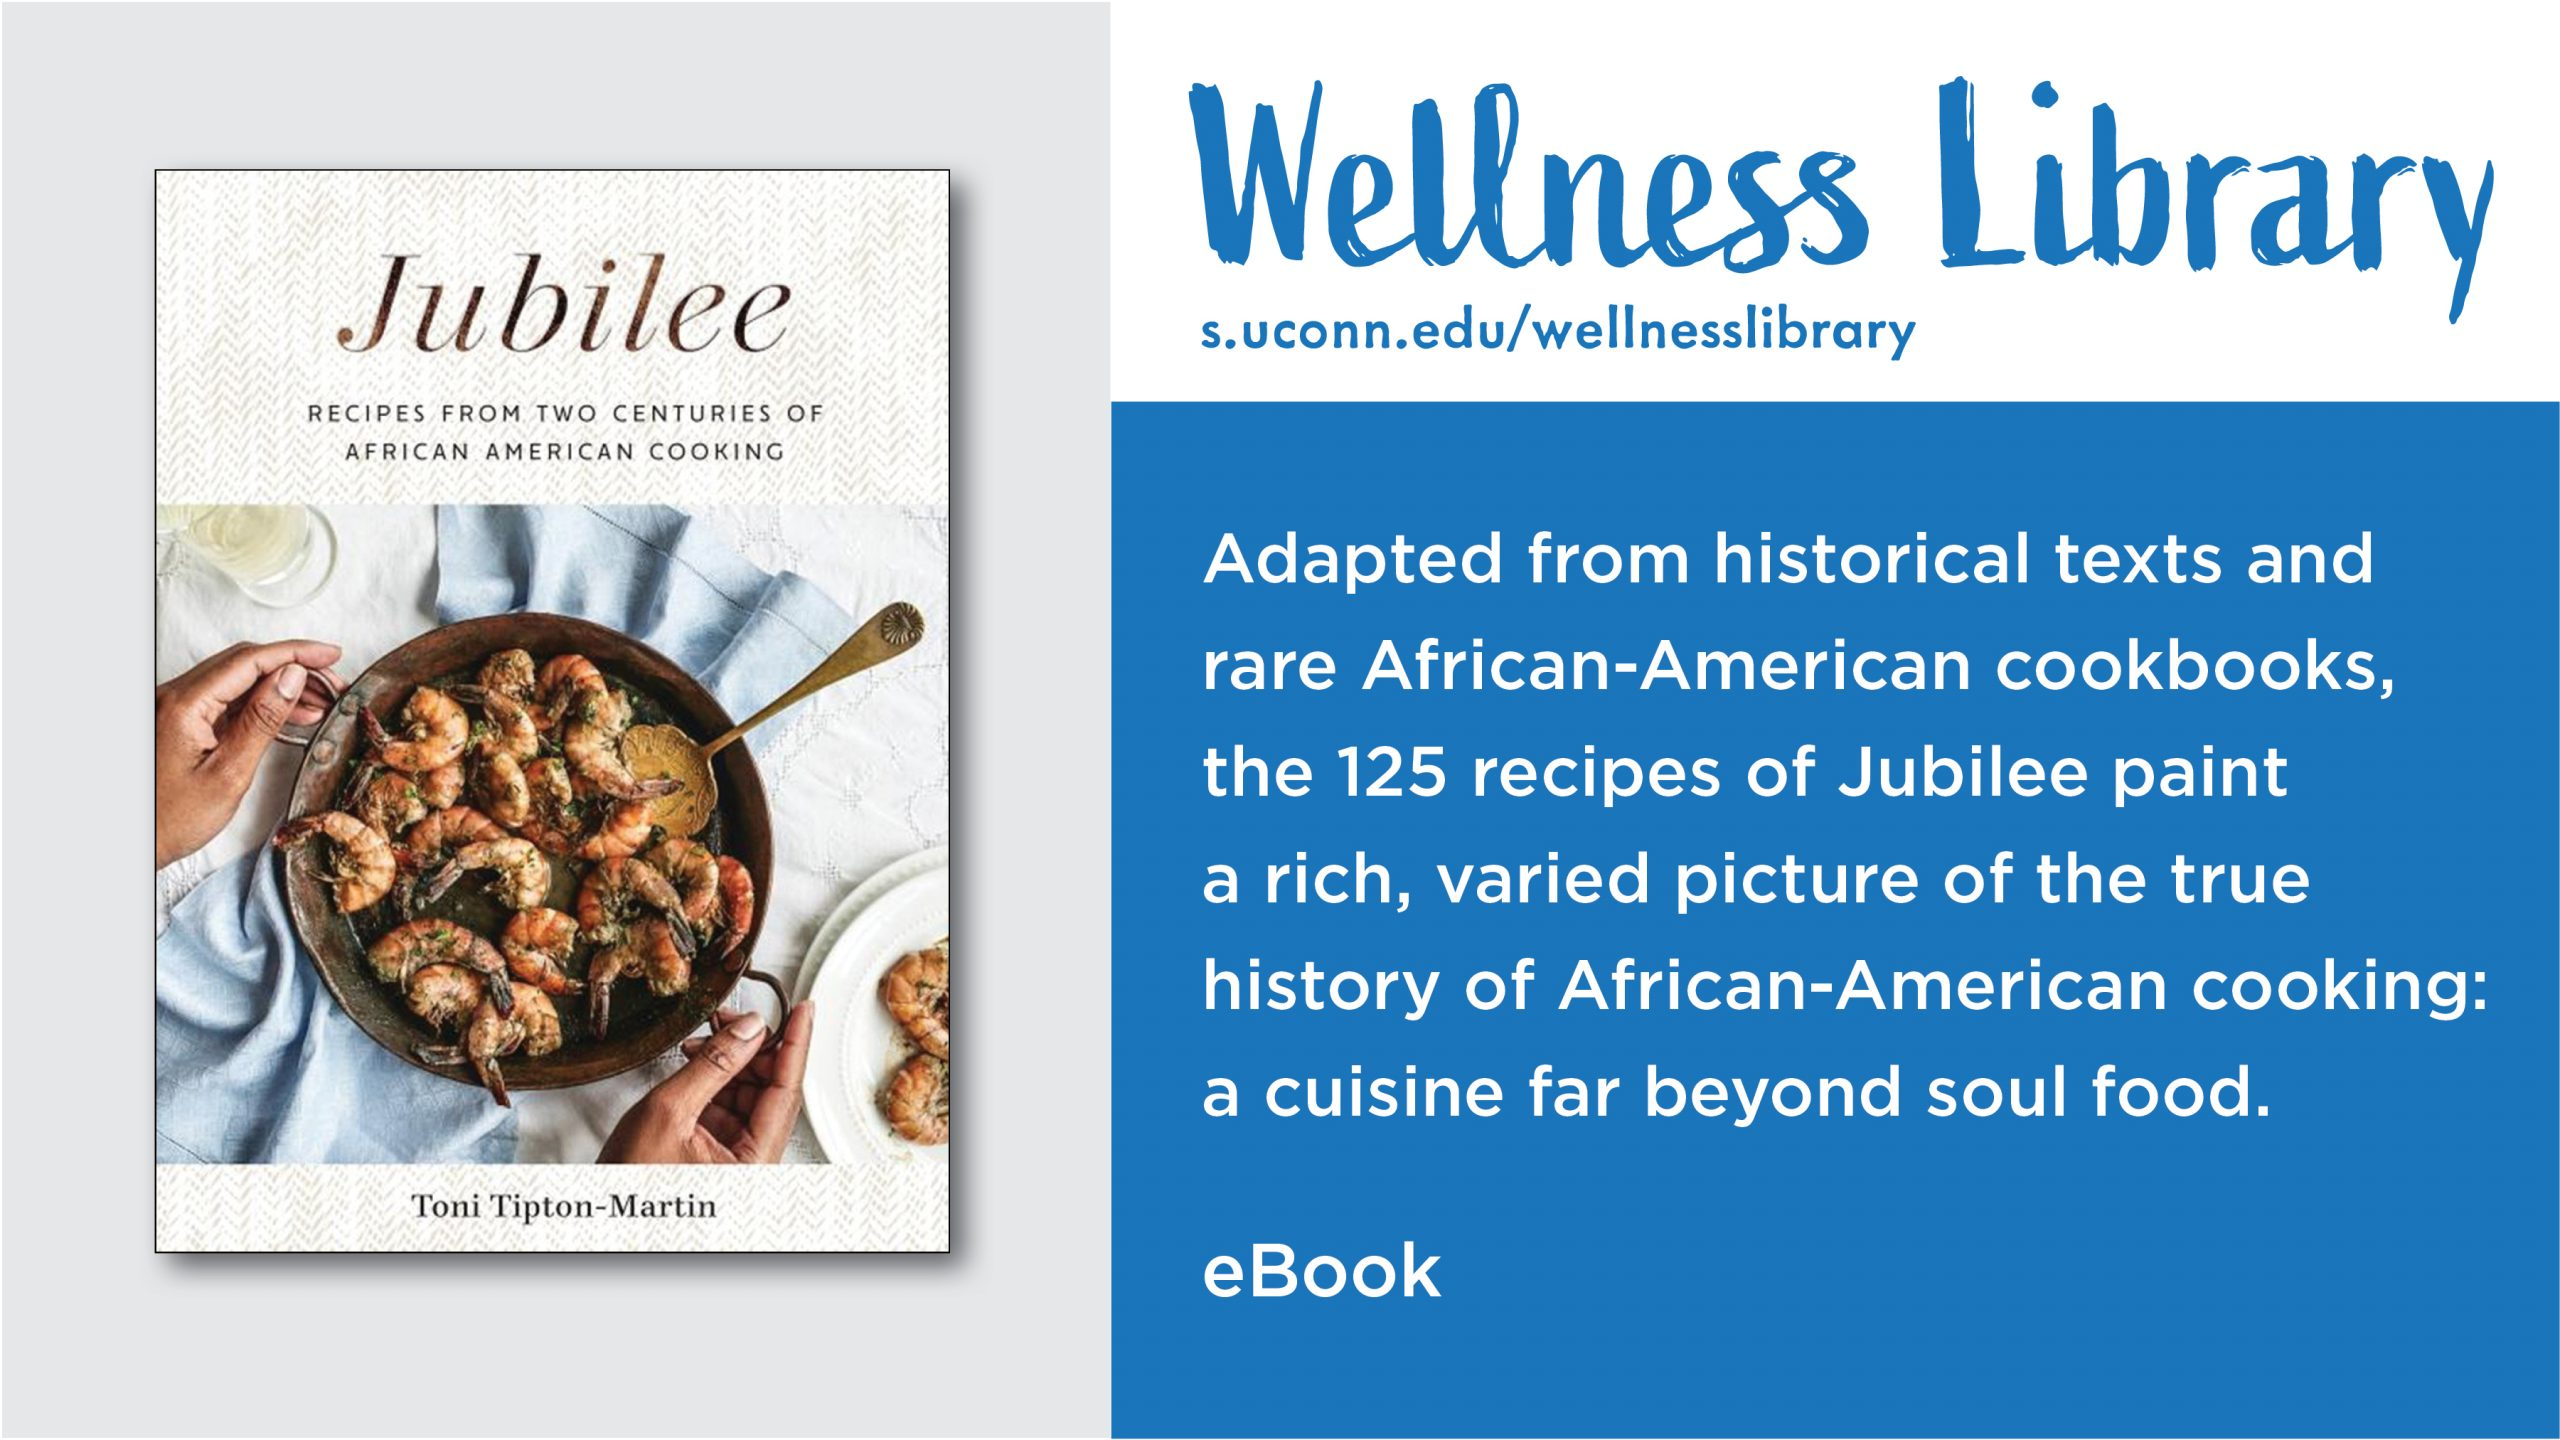 Wellness Library: Adapted from historical texts and rare African-American cookbooks, the 125 recipes of Jubilee paint a rich, varied picture of the true history of African-American cooking: a cuisine far beyond soul food.